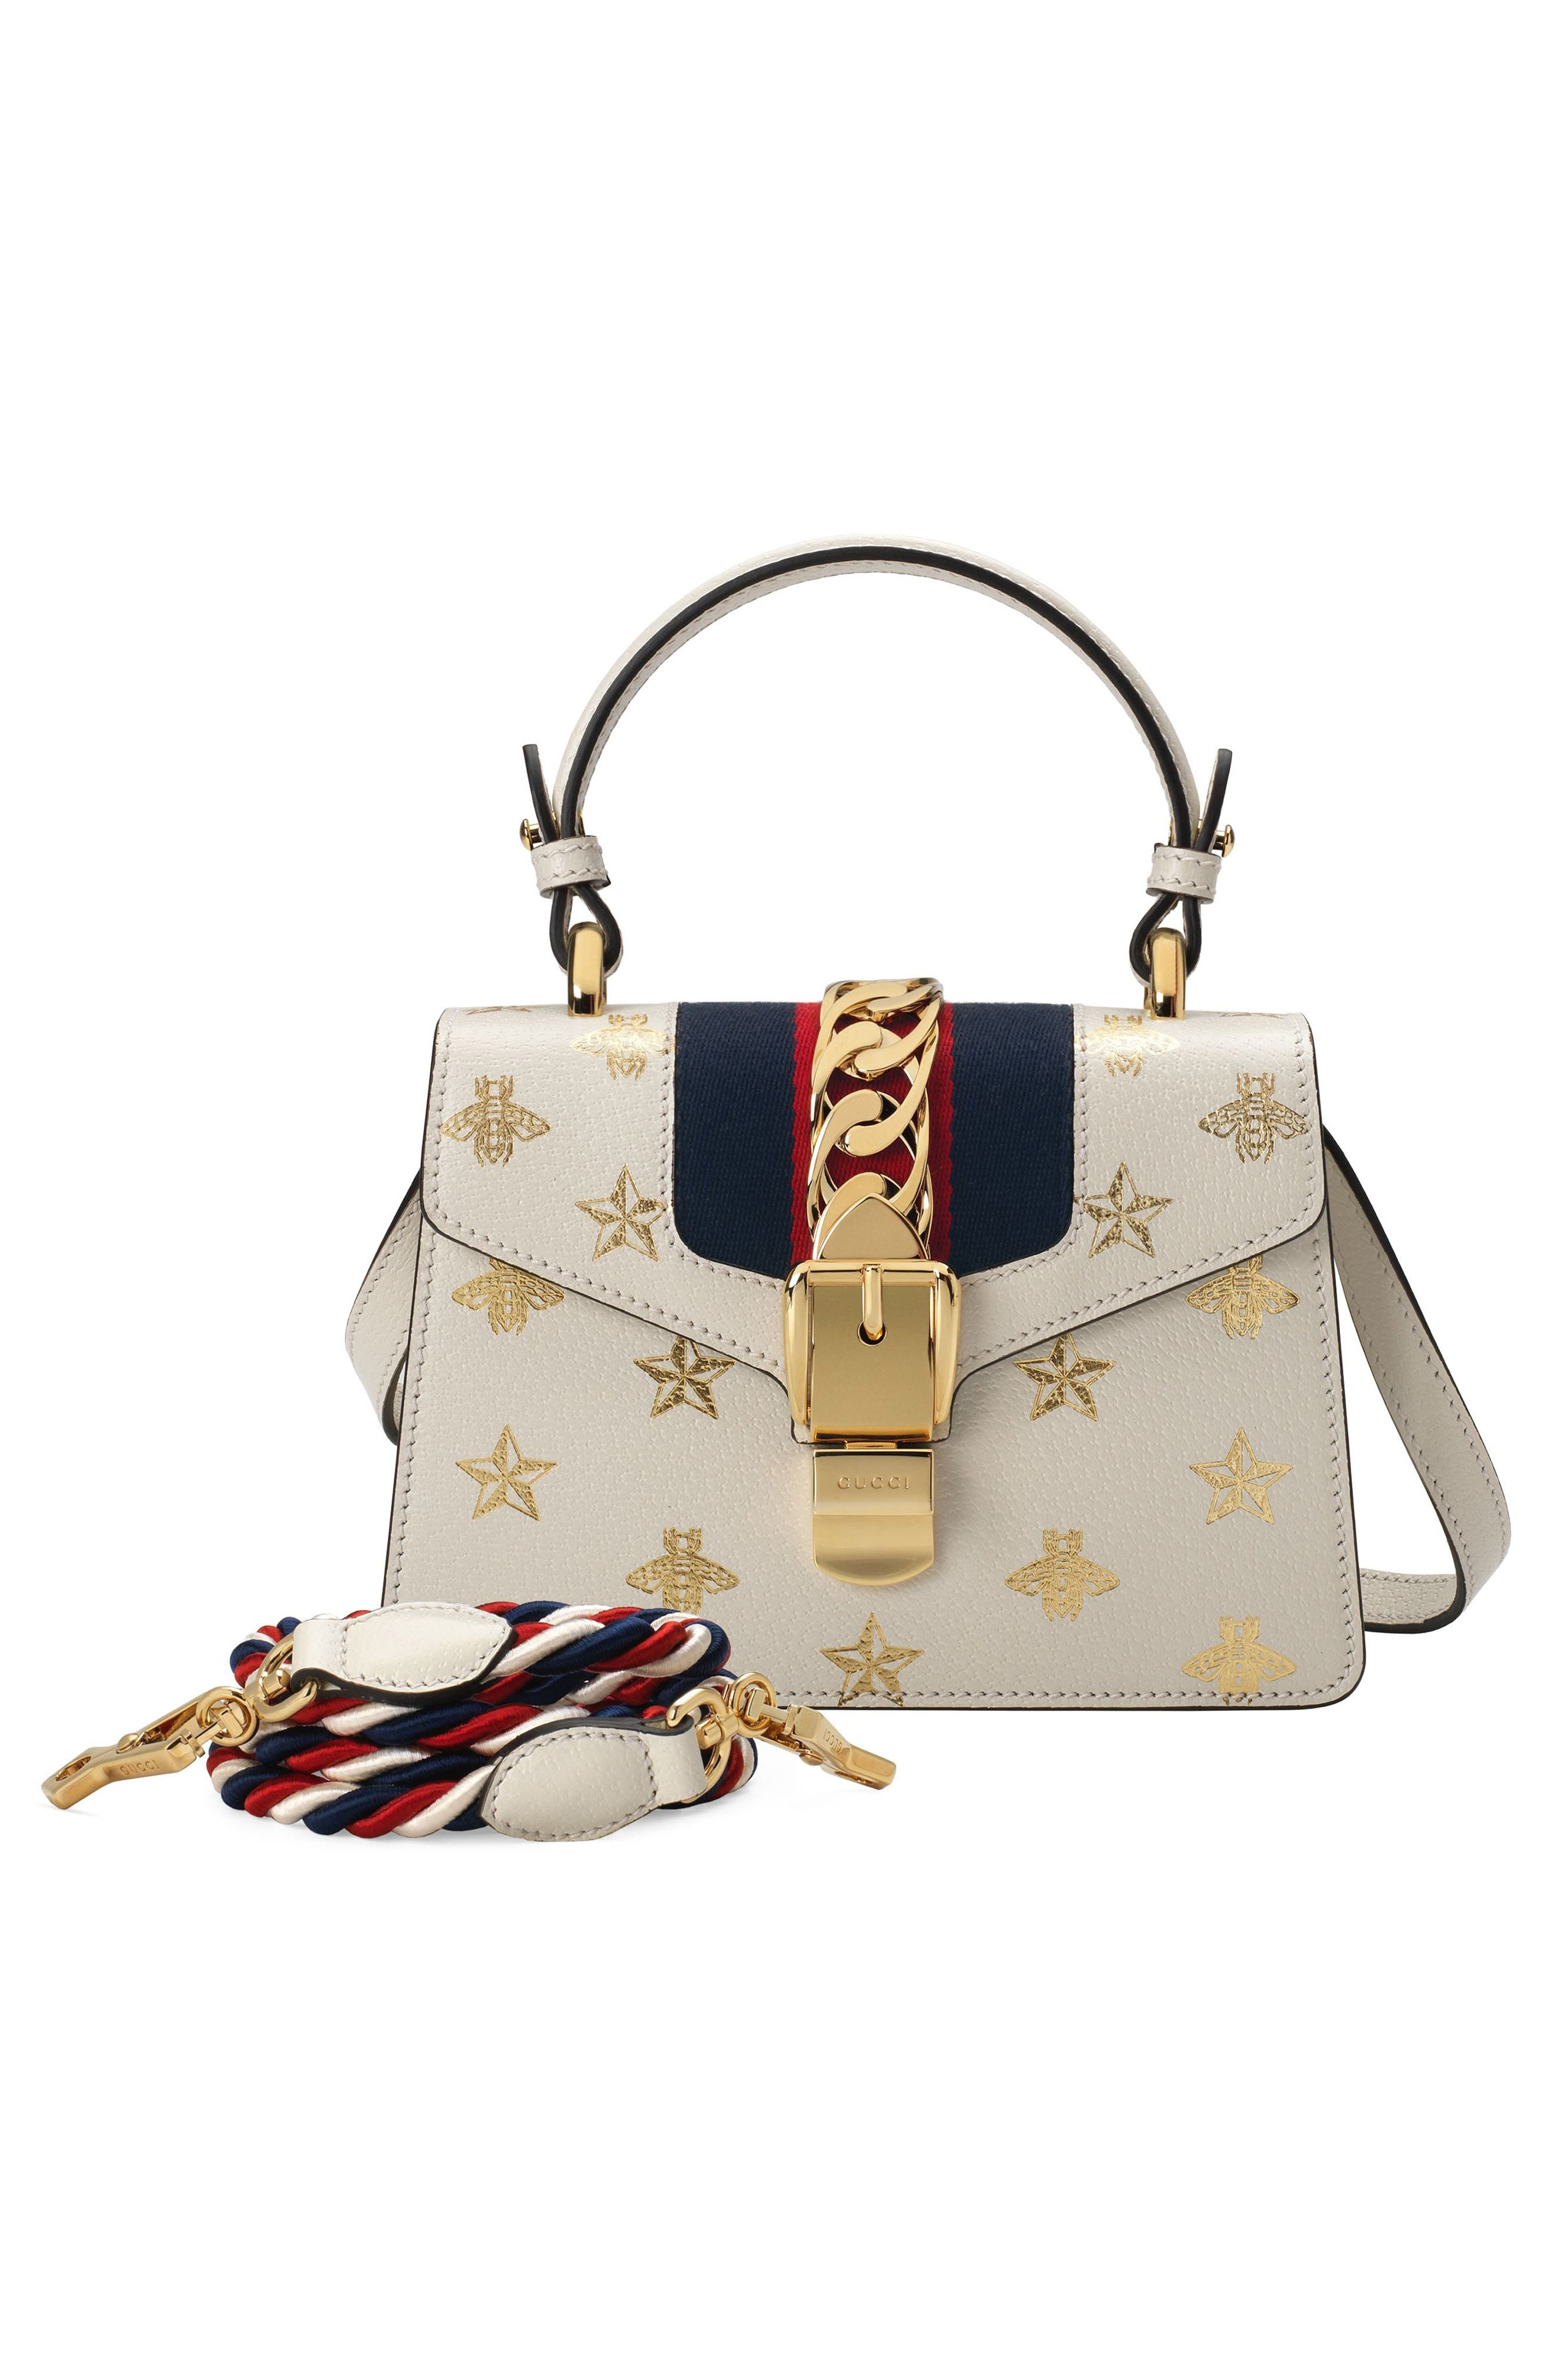 Small Sylvie Top Handle Leather Shoulder Bag,                             Alternate thumbnail 5, color,                             MYSTIC WHITE/ ORO/ BLUE/ RED